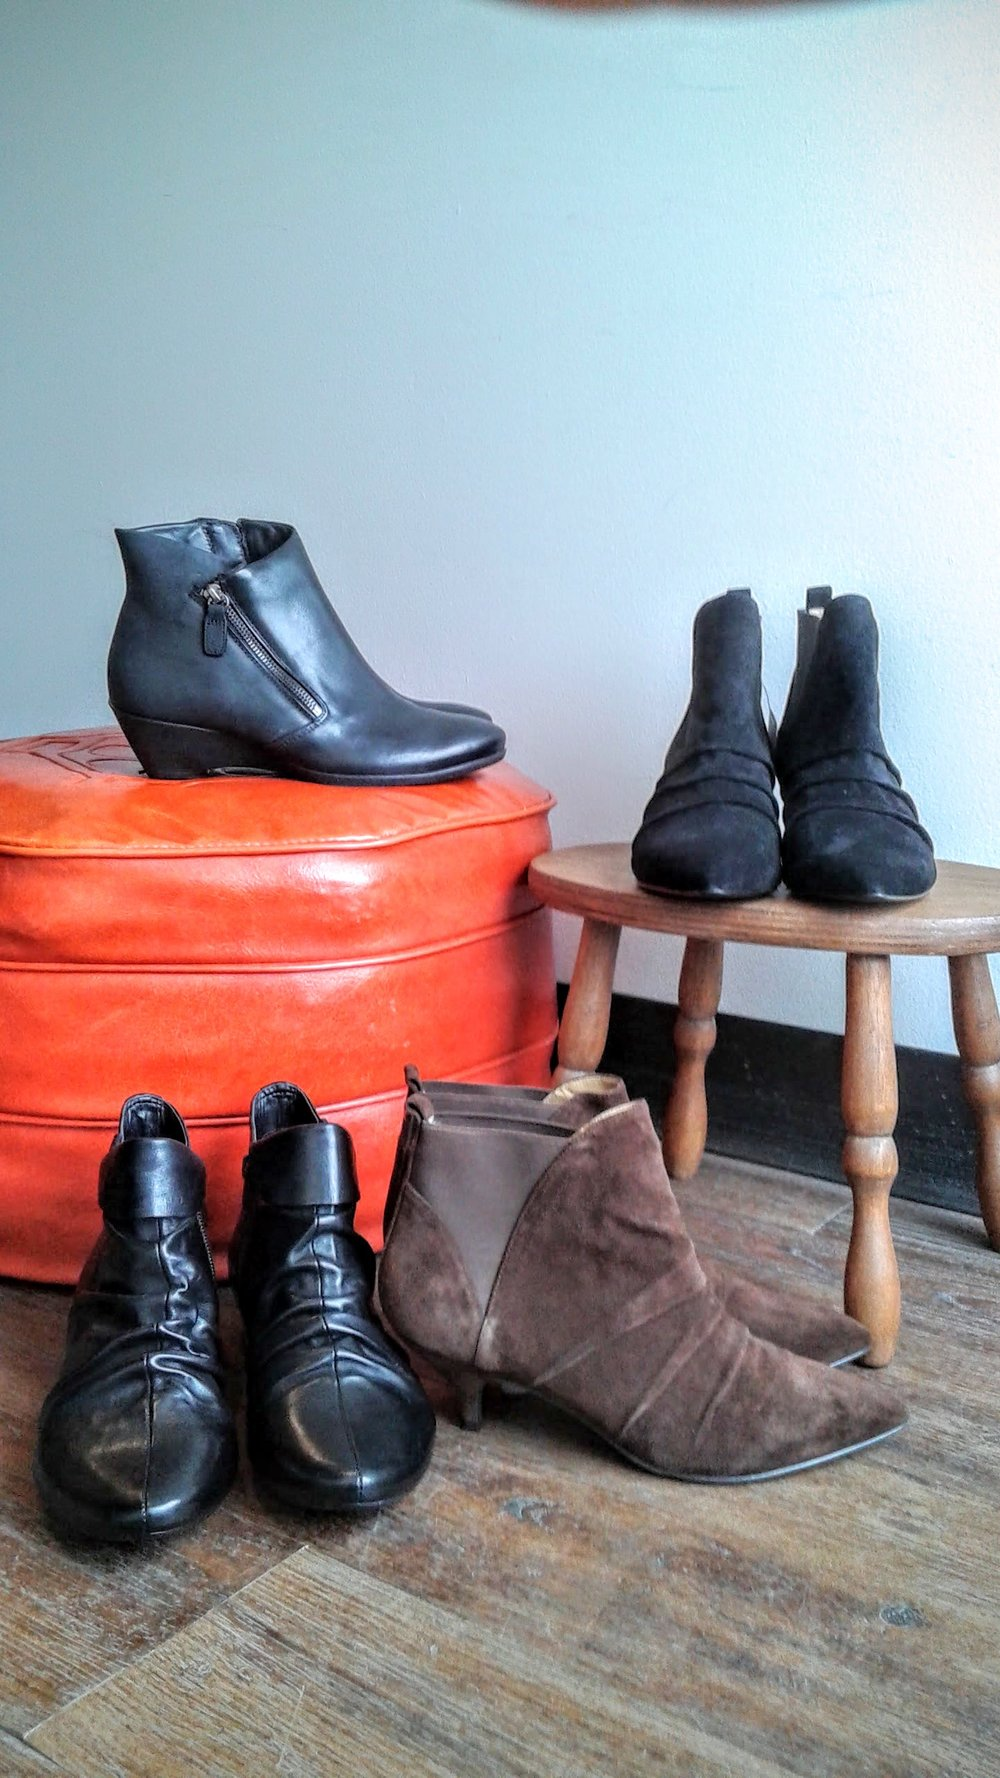 Clarks, S7, $46; Nine West black, S7, $46; Nine West brown, S7, $46; Ecco boots, S6.5, $62